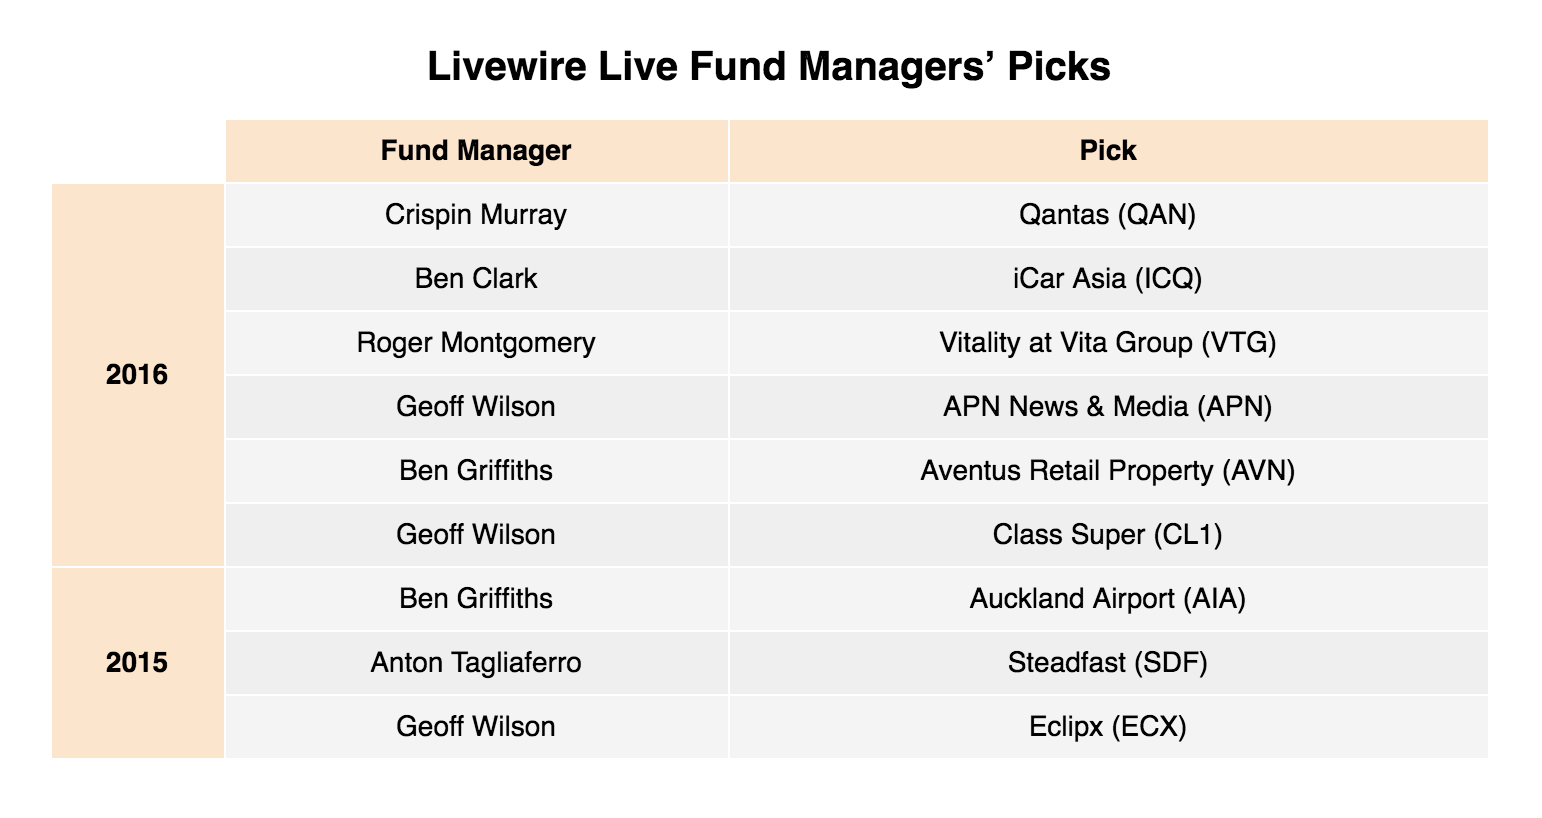 Table - Livewire Live Stock Picks 2015-2016